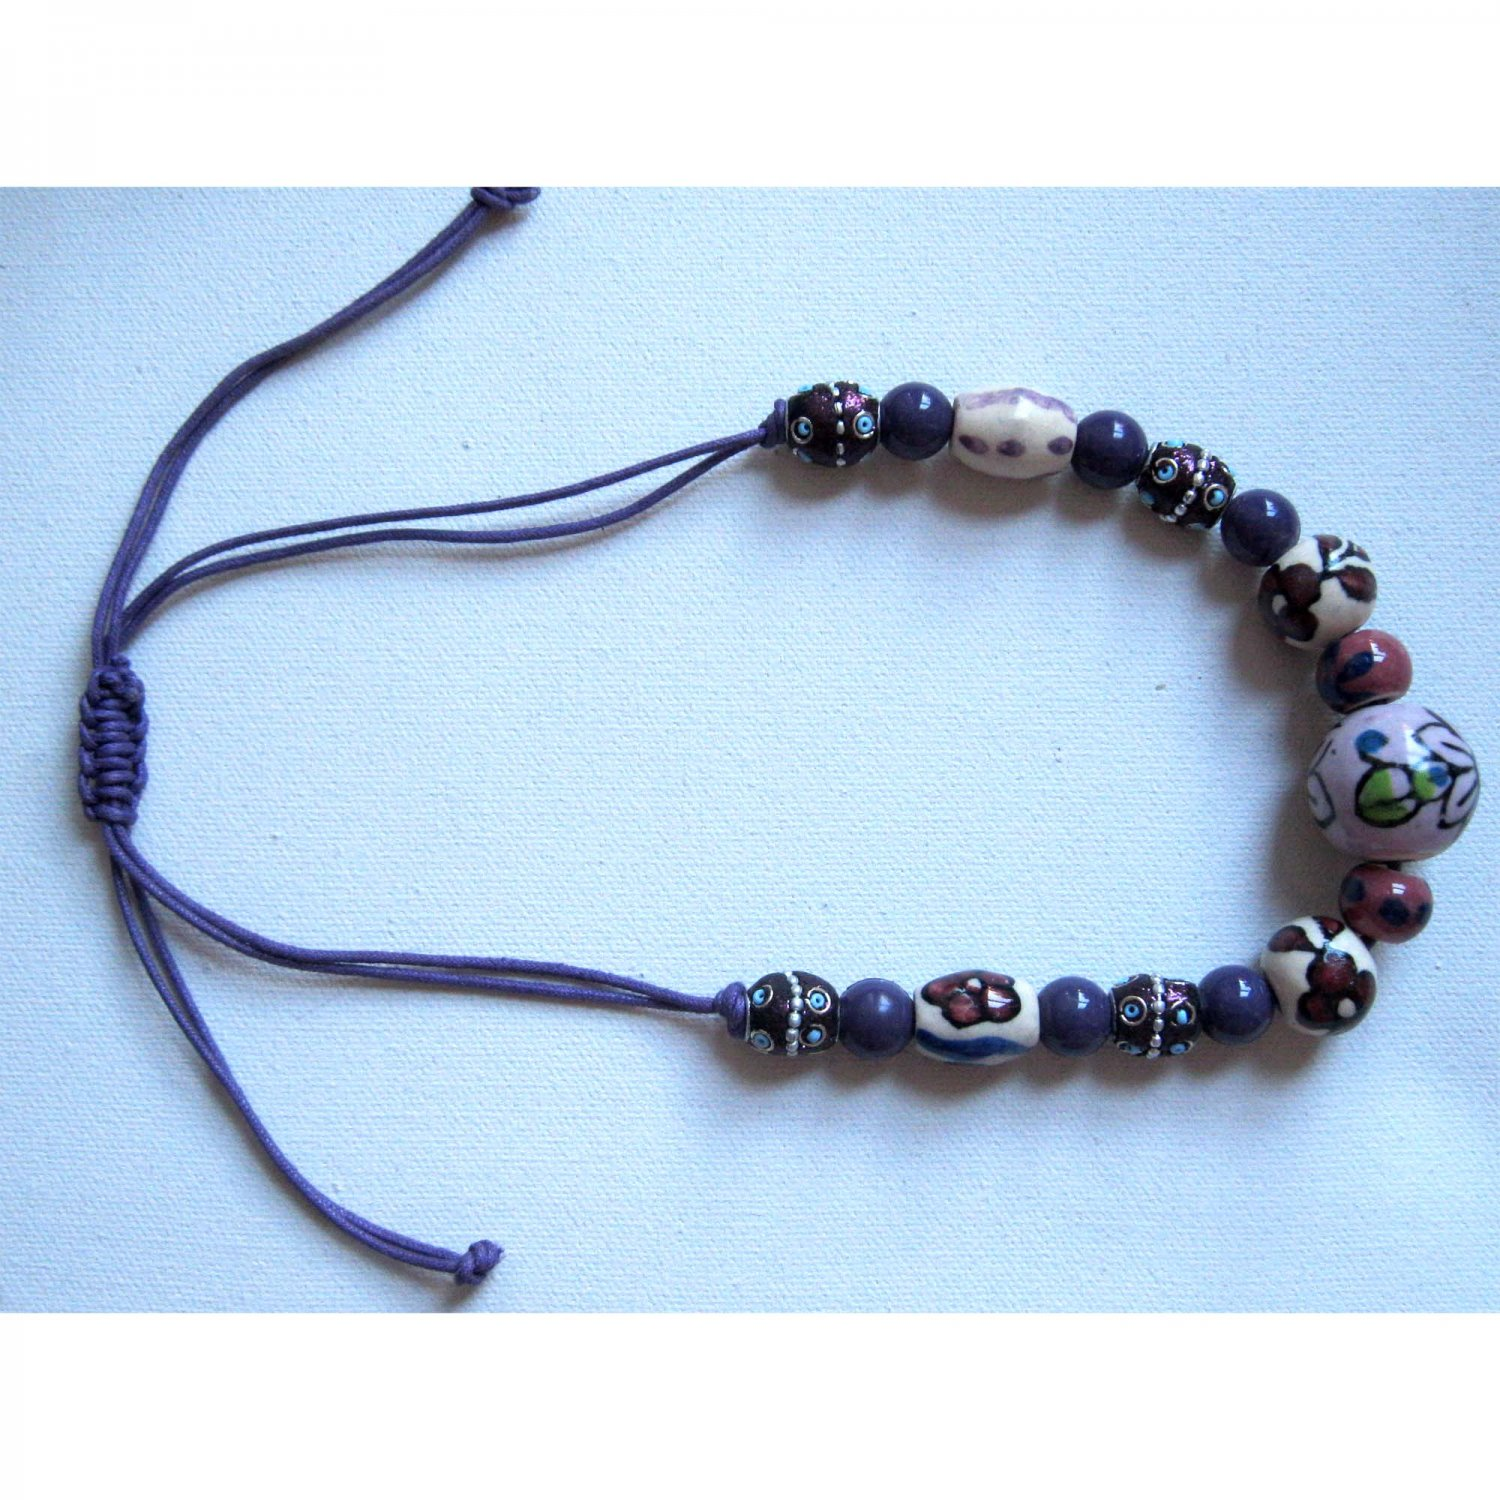 Purple ceramic necklace with flowers - adjustable good luck Jewelry Trends